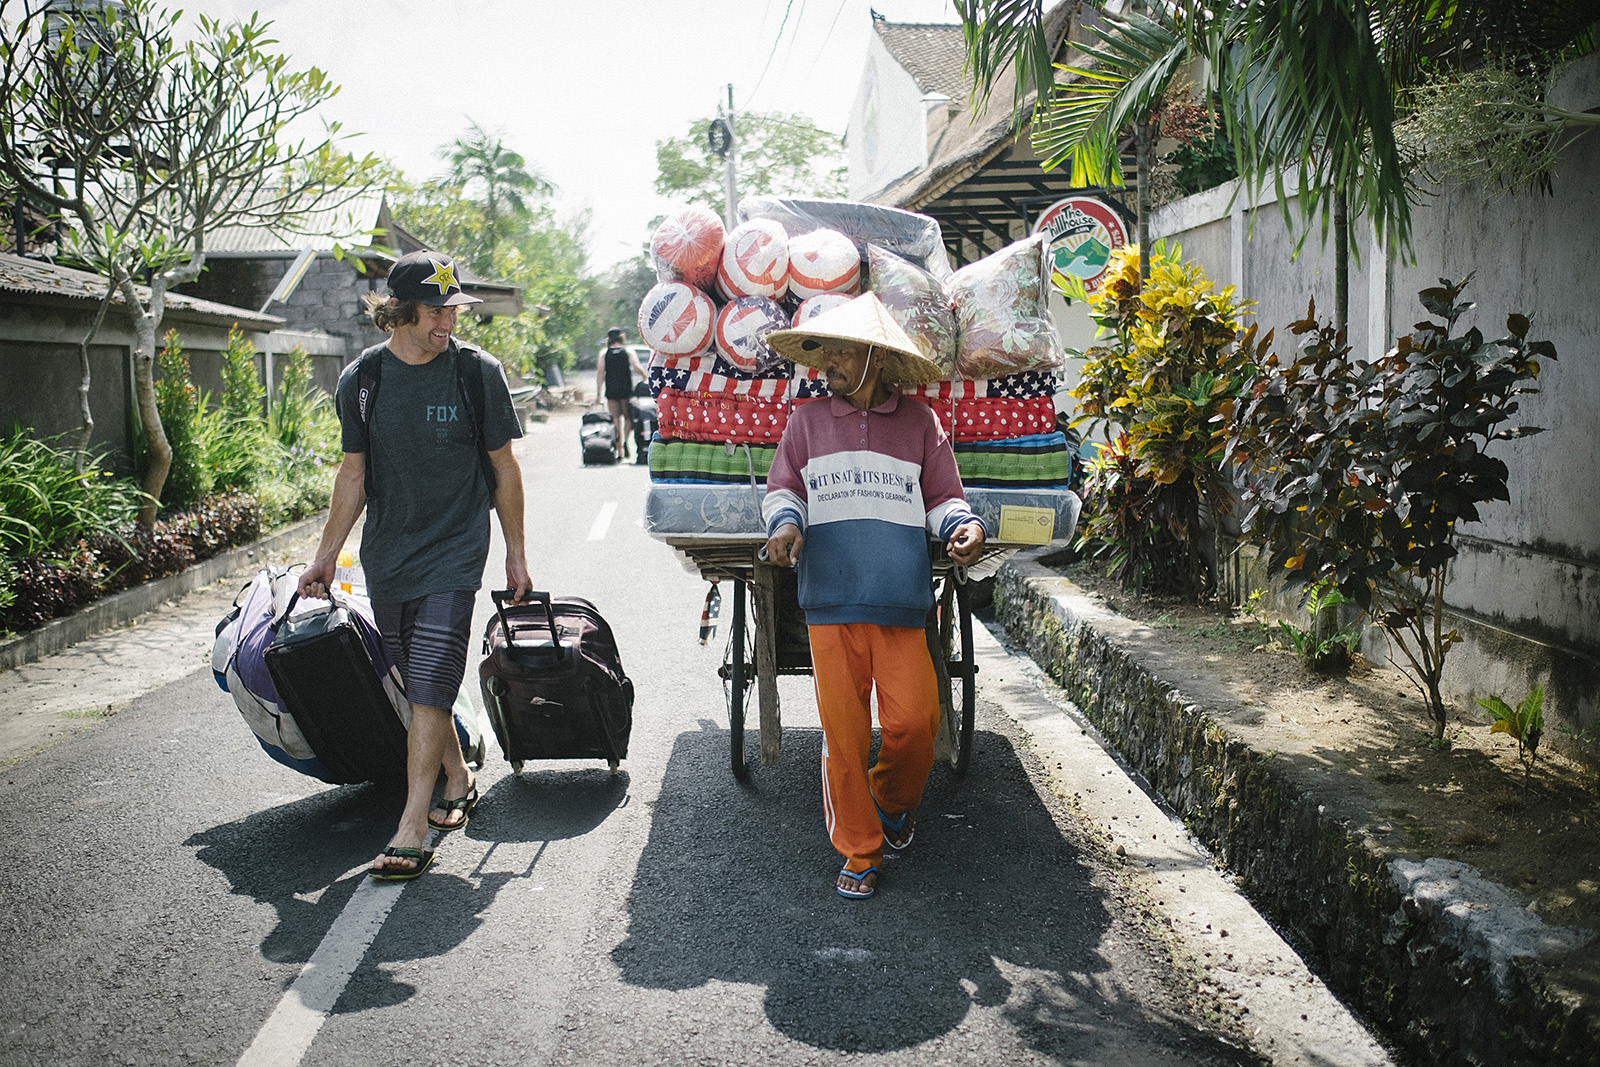 Cam McCaul arrives at the Chillhouse in Bali Indonesia